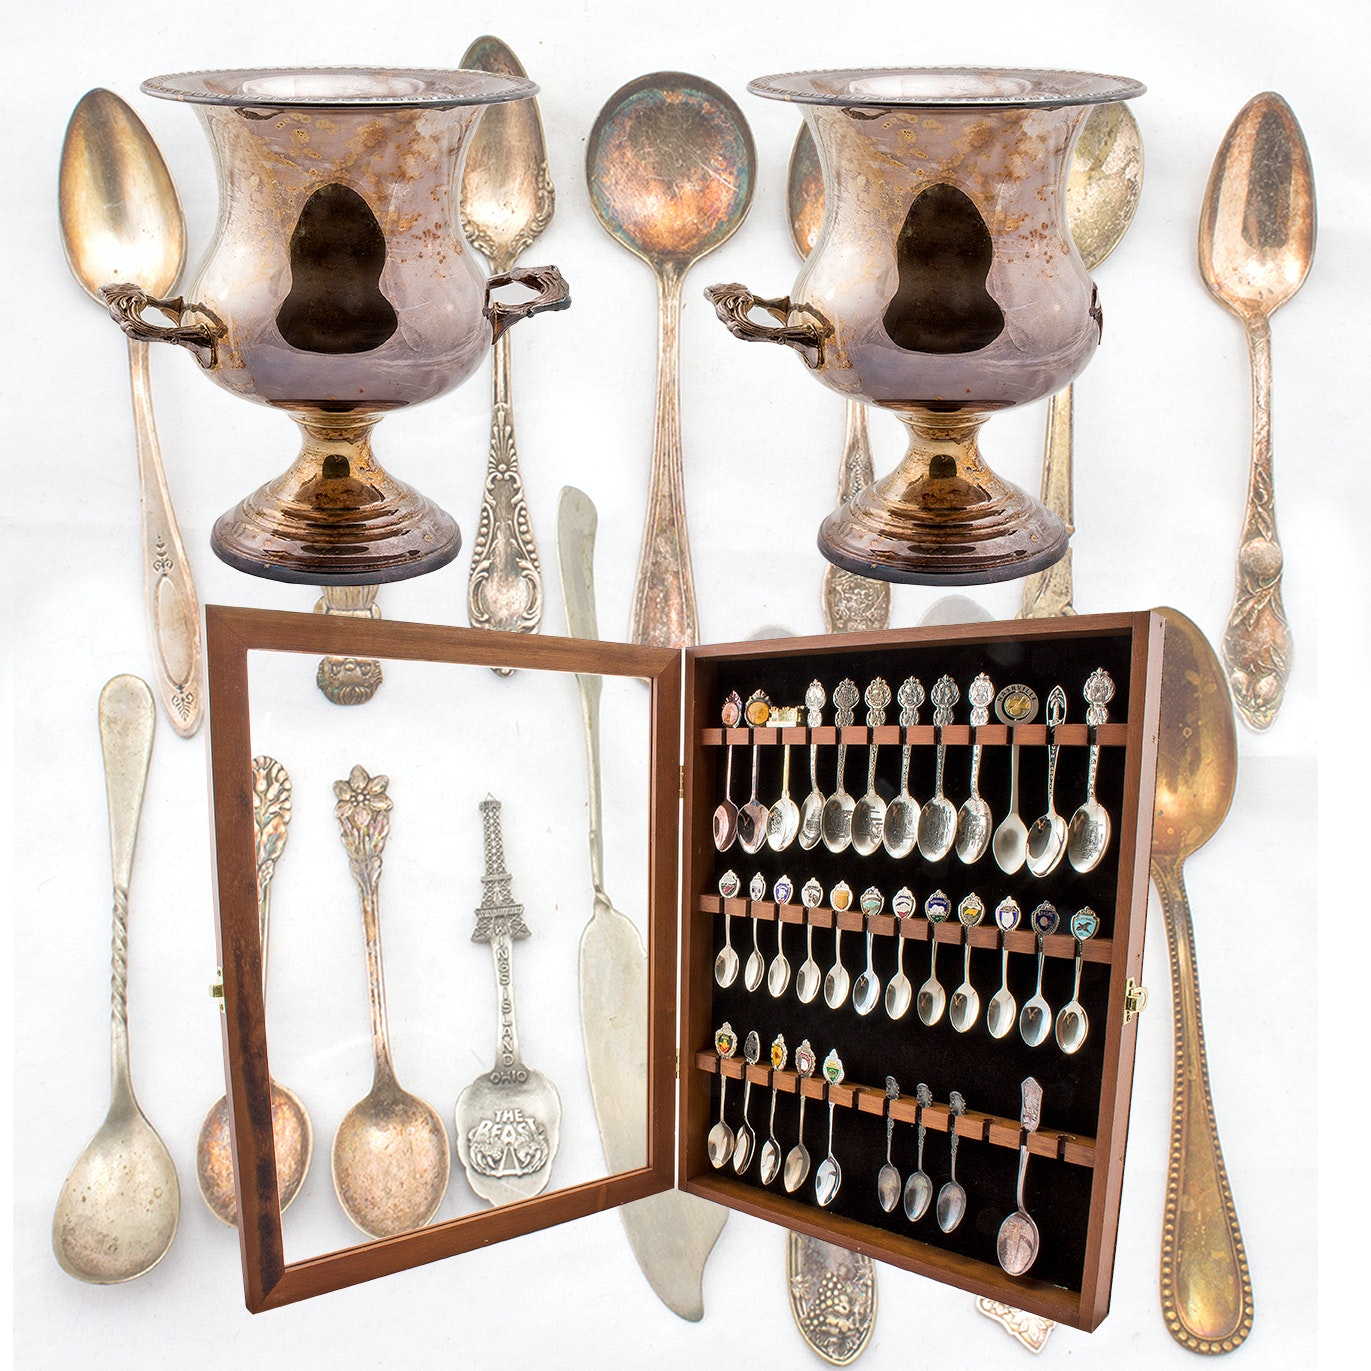 Silver Plated Champagne Buckets and Souvenir Spoon Collection in Display Case